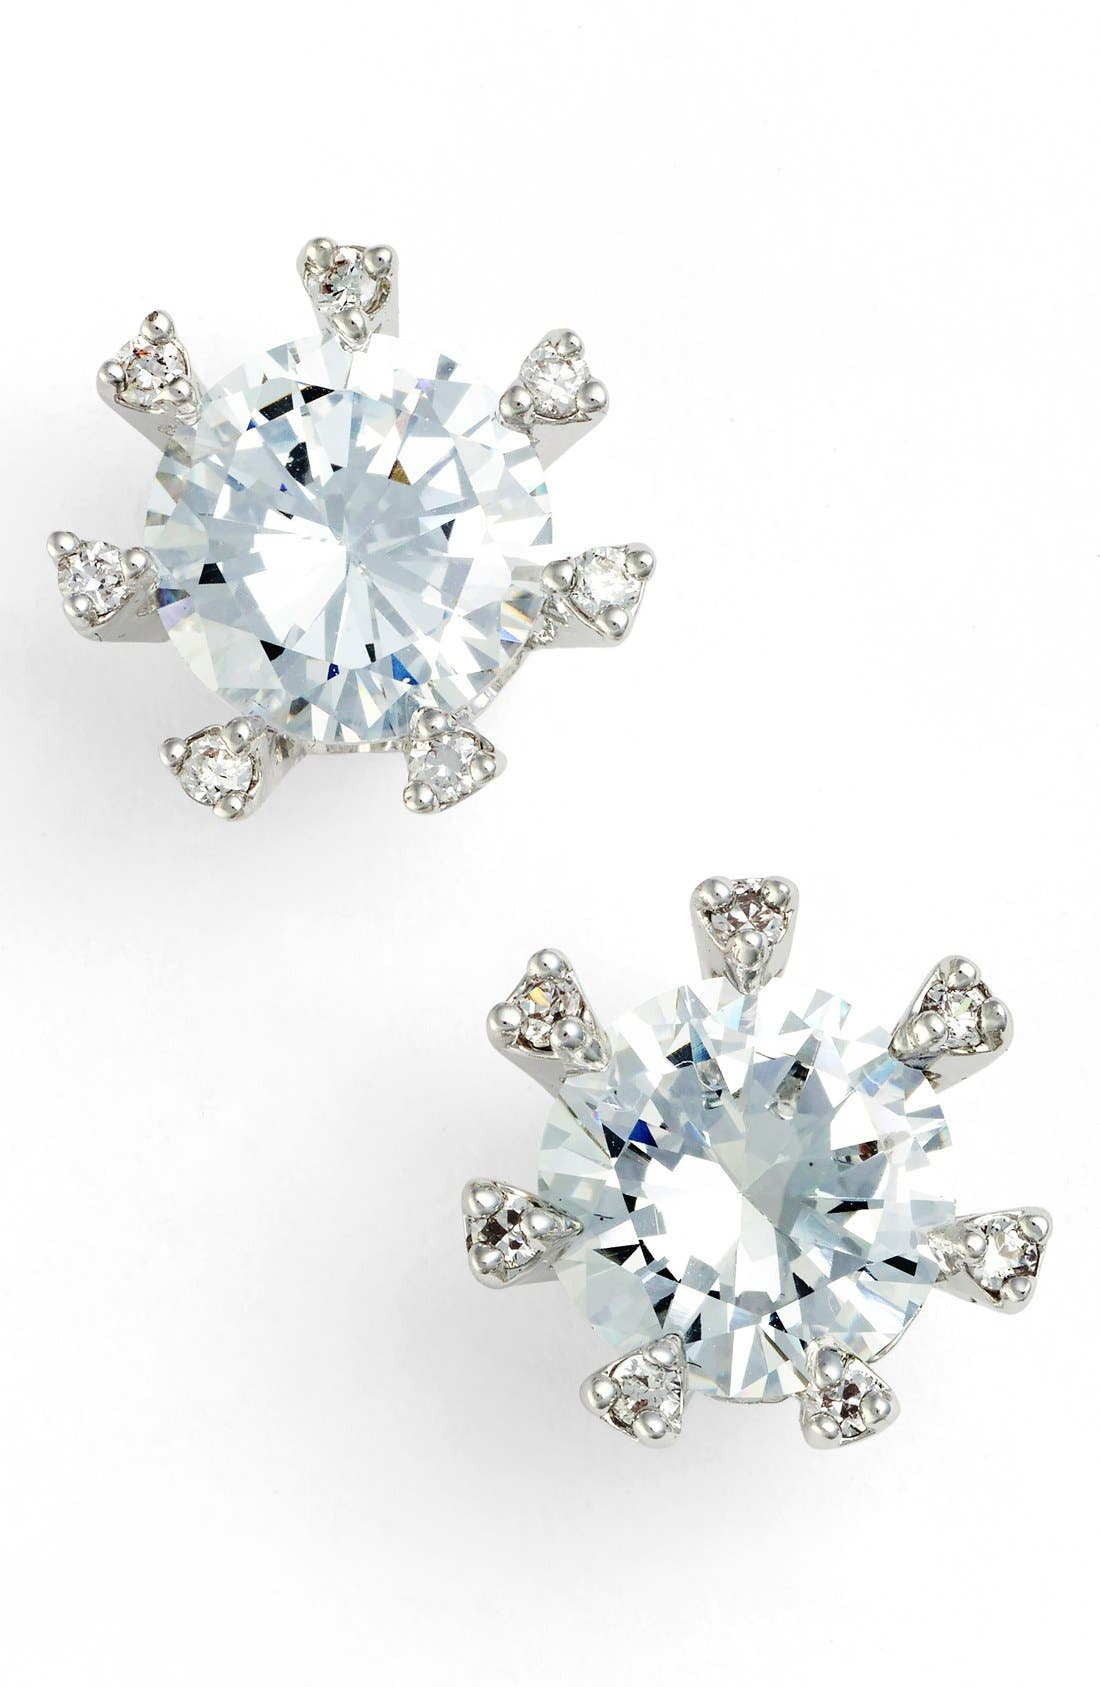 Embellished Prong Cubic Zirconia Stud Earrings,                             Main thumbnail 1, color,                             040